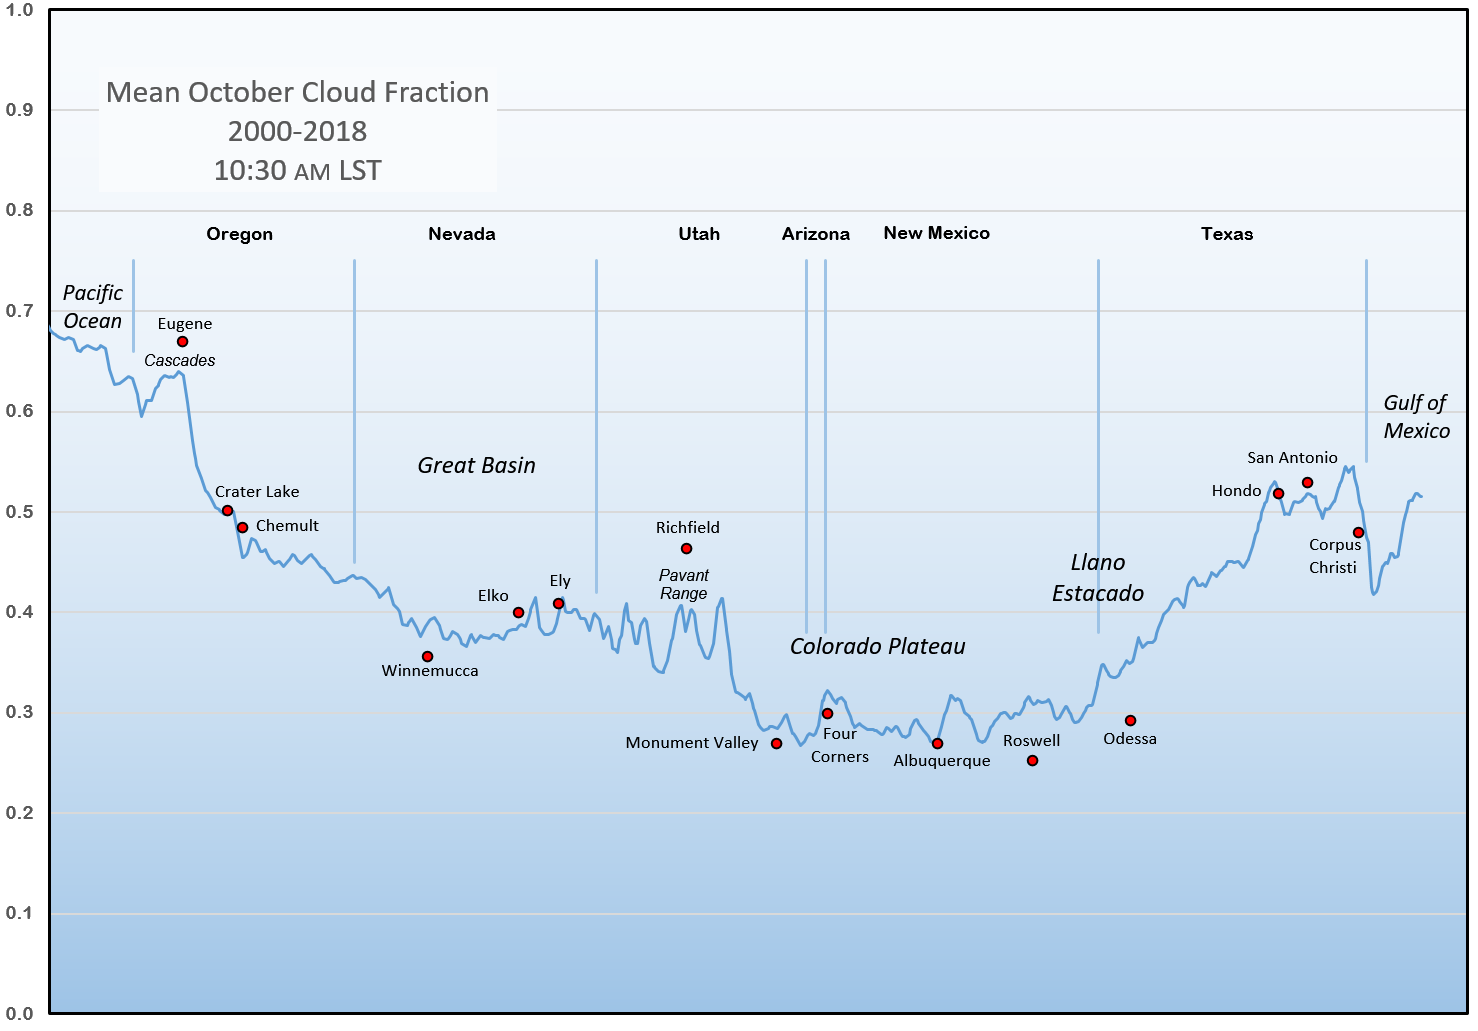 October Average Cloud Fraction Along the Path of Annularity